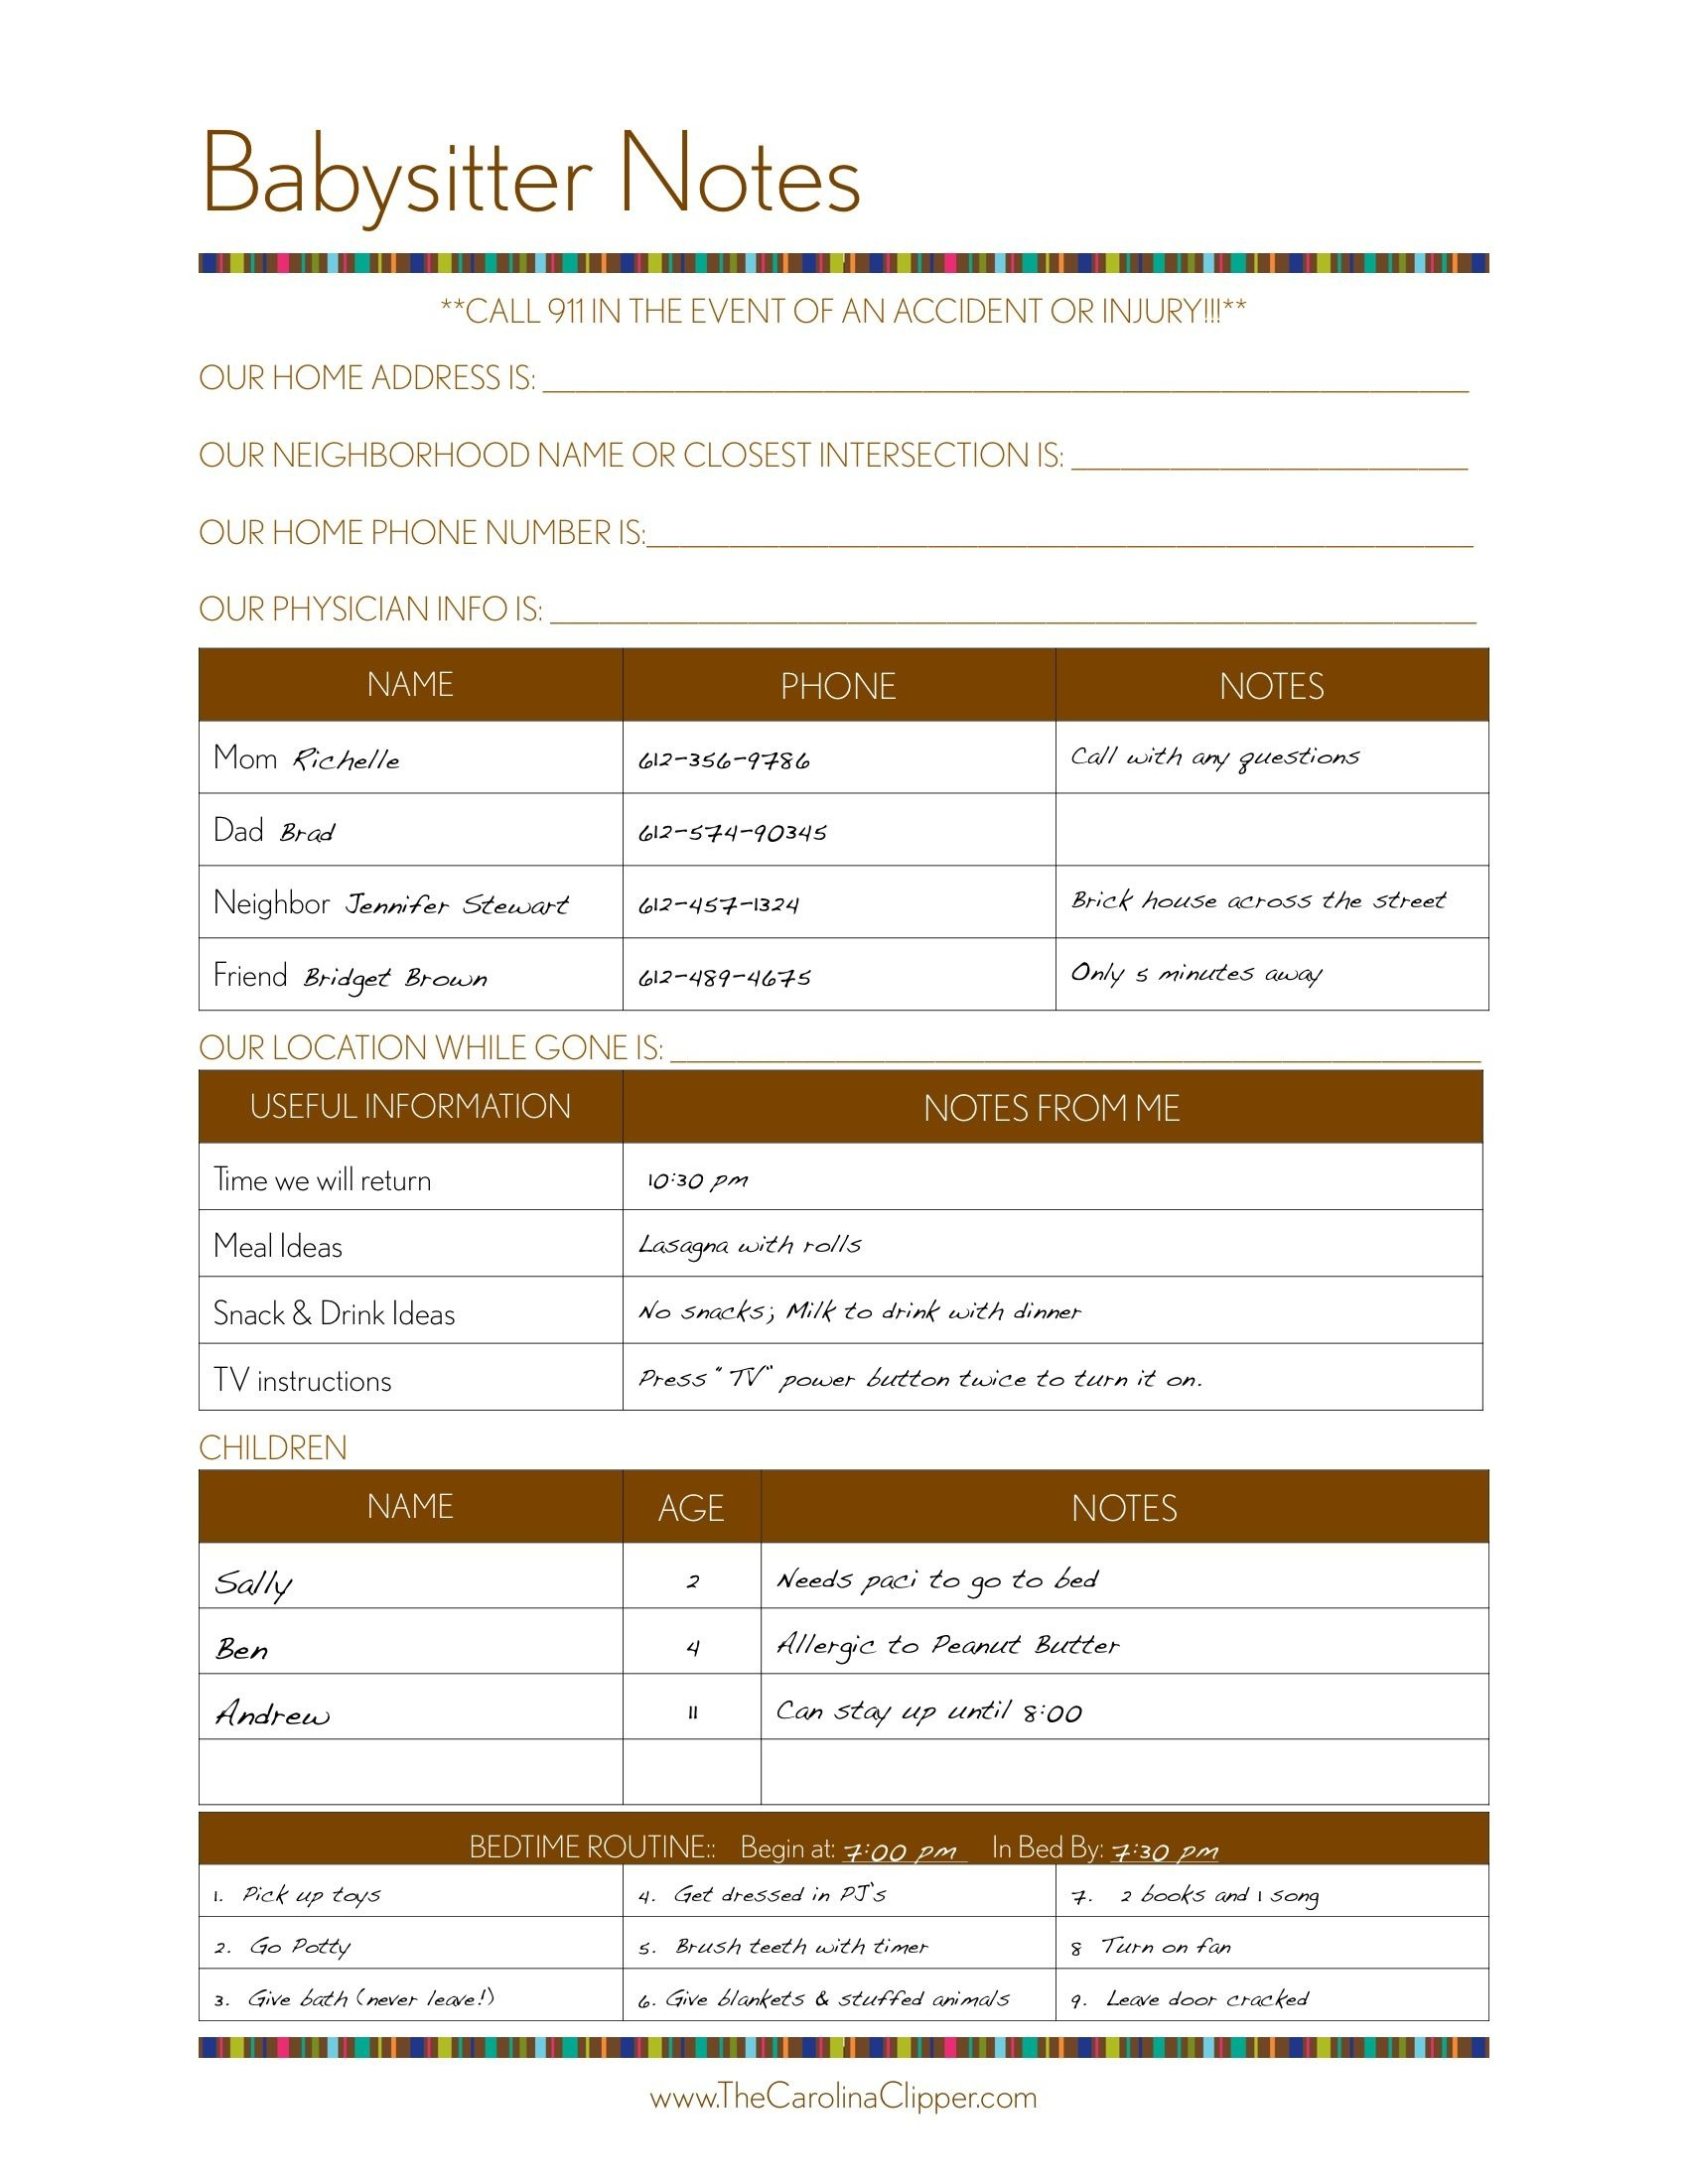 Free To Print Babysitter Notes-Laminate The Babysitter Notes Sh - Babysitter Notes Free Printable